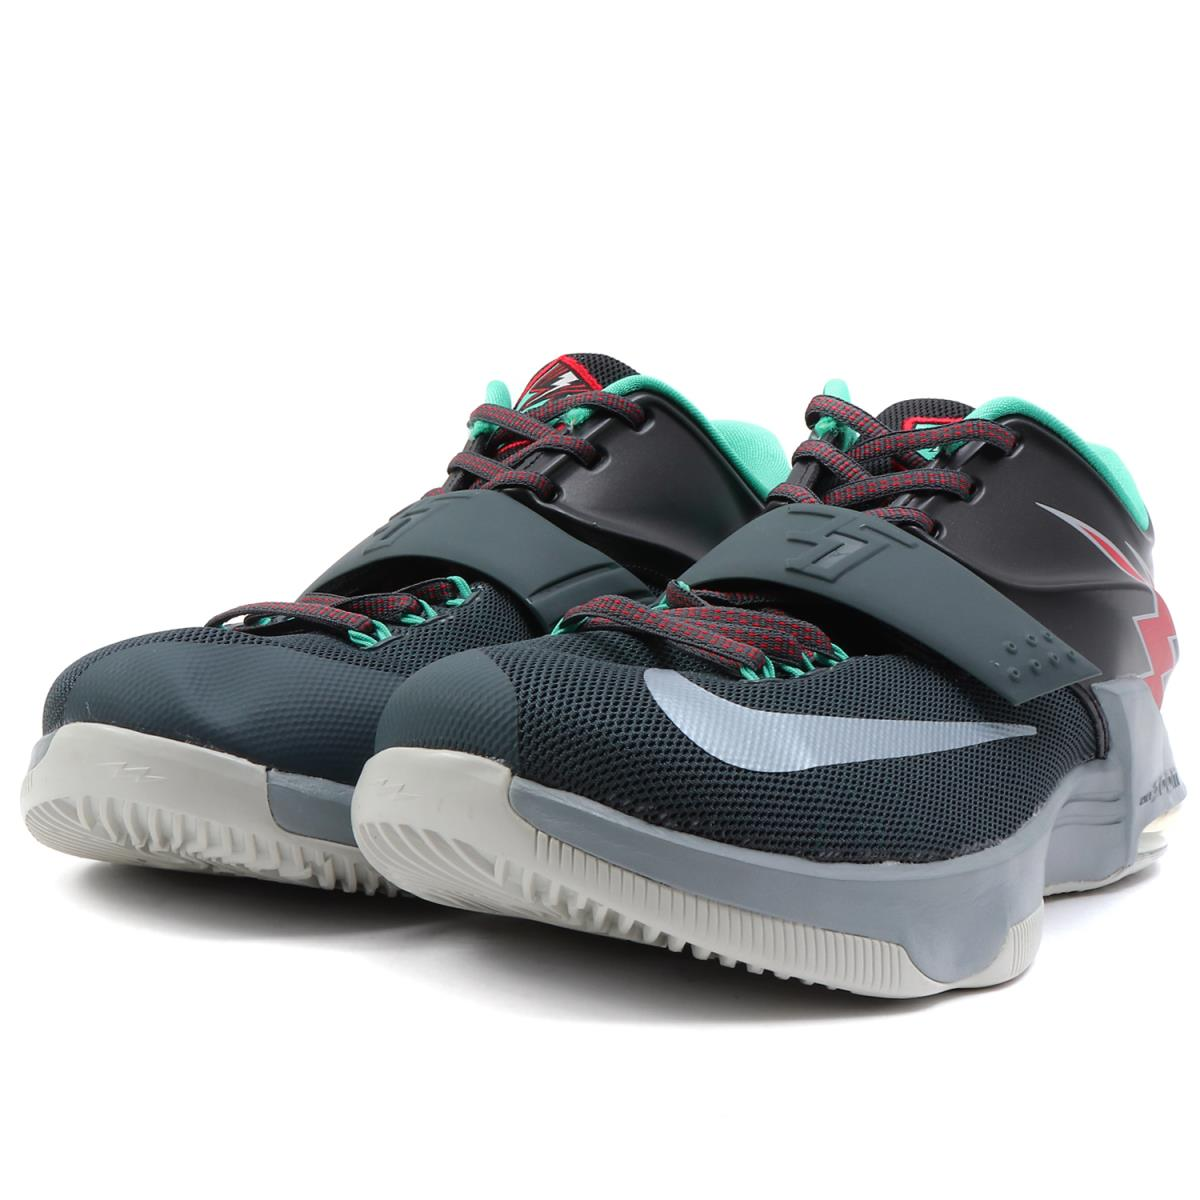 new concept c7802 35705 ... wholesale nike nike kd 7 flight pack thunderbolt 653996 005 classical  music charcoal us1129cm facf3 22898